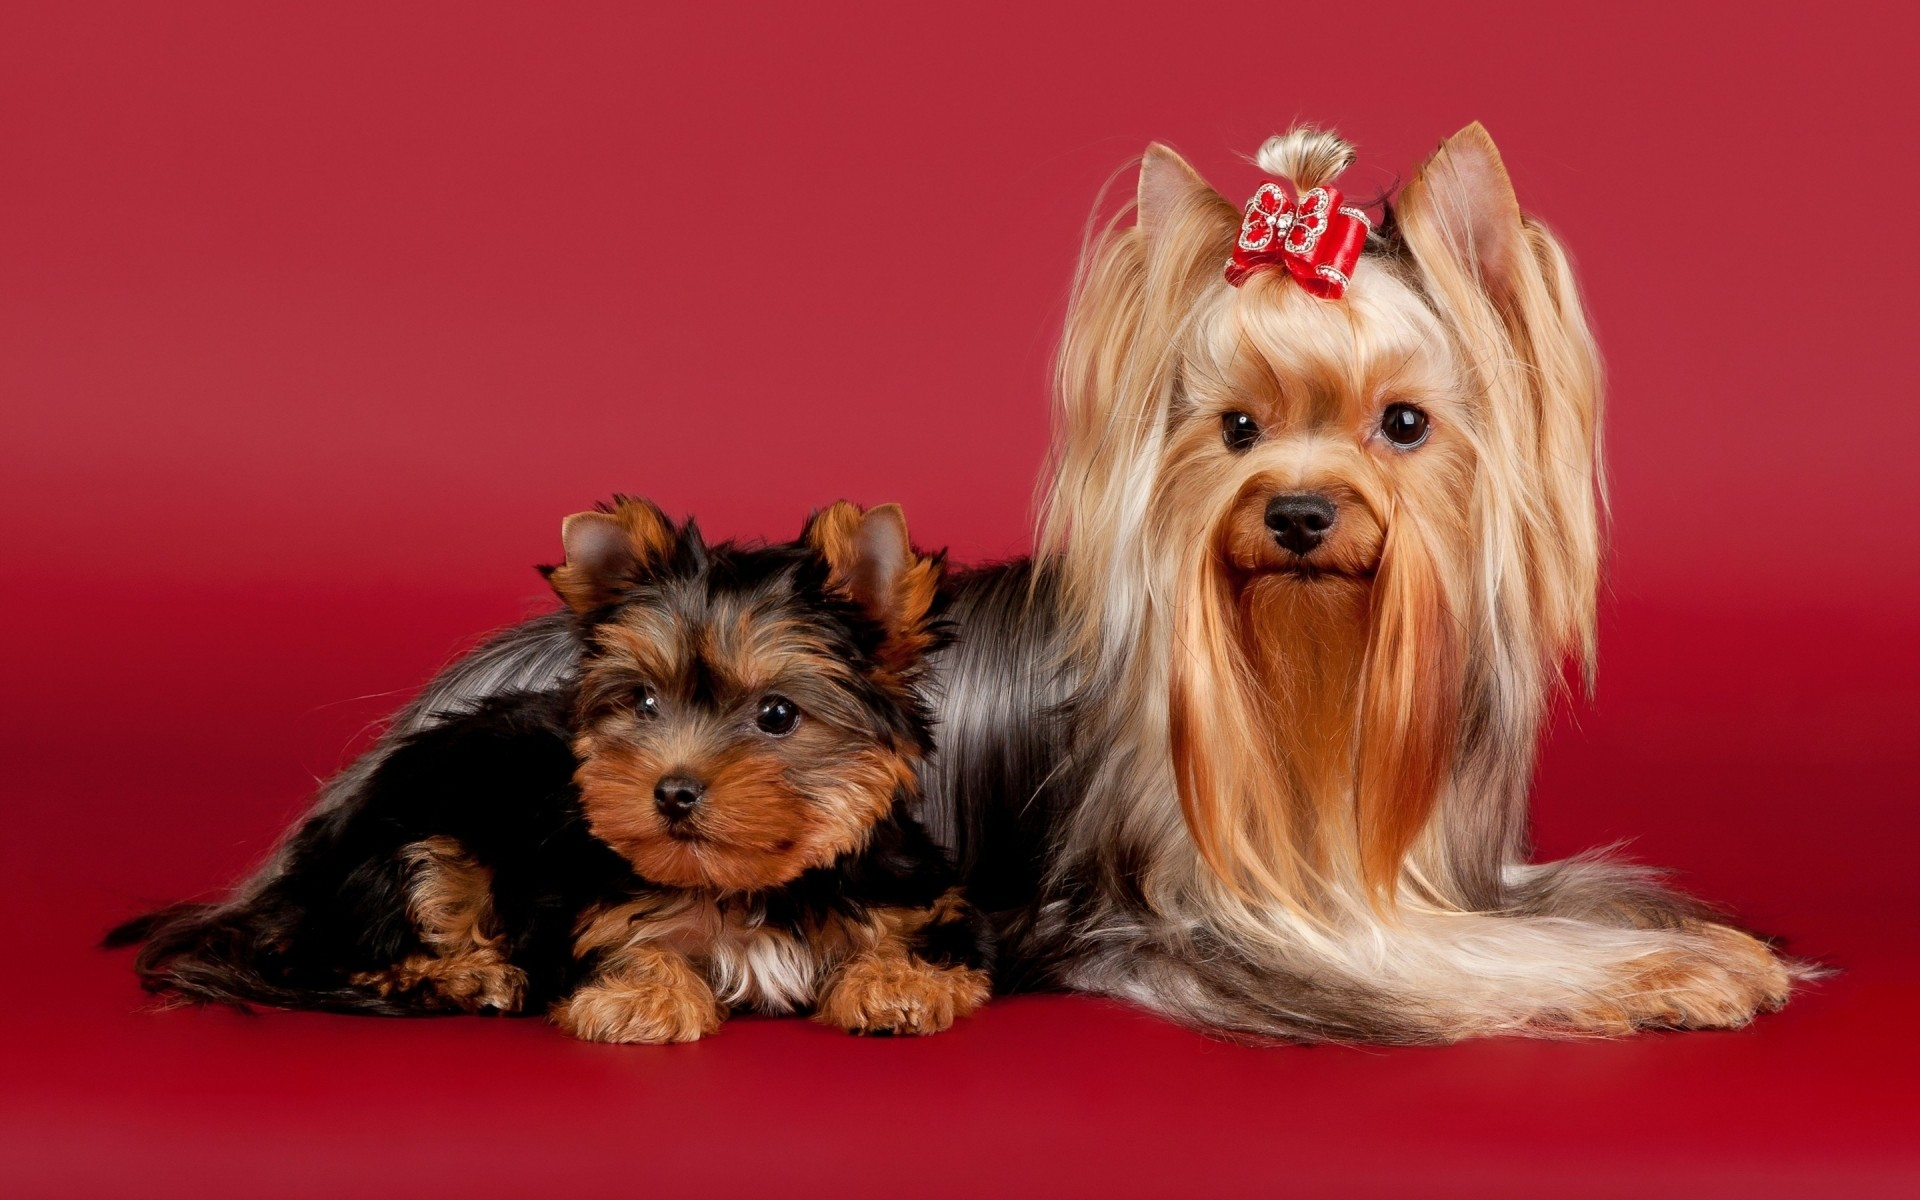 dogs dog cute pet canine mammal terrier little puppy animal fur sit portrait purebred funny breed domestic pedigree studio